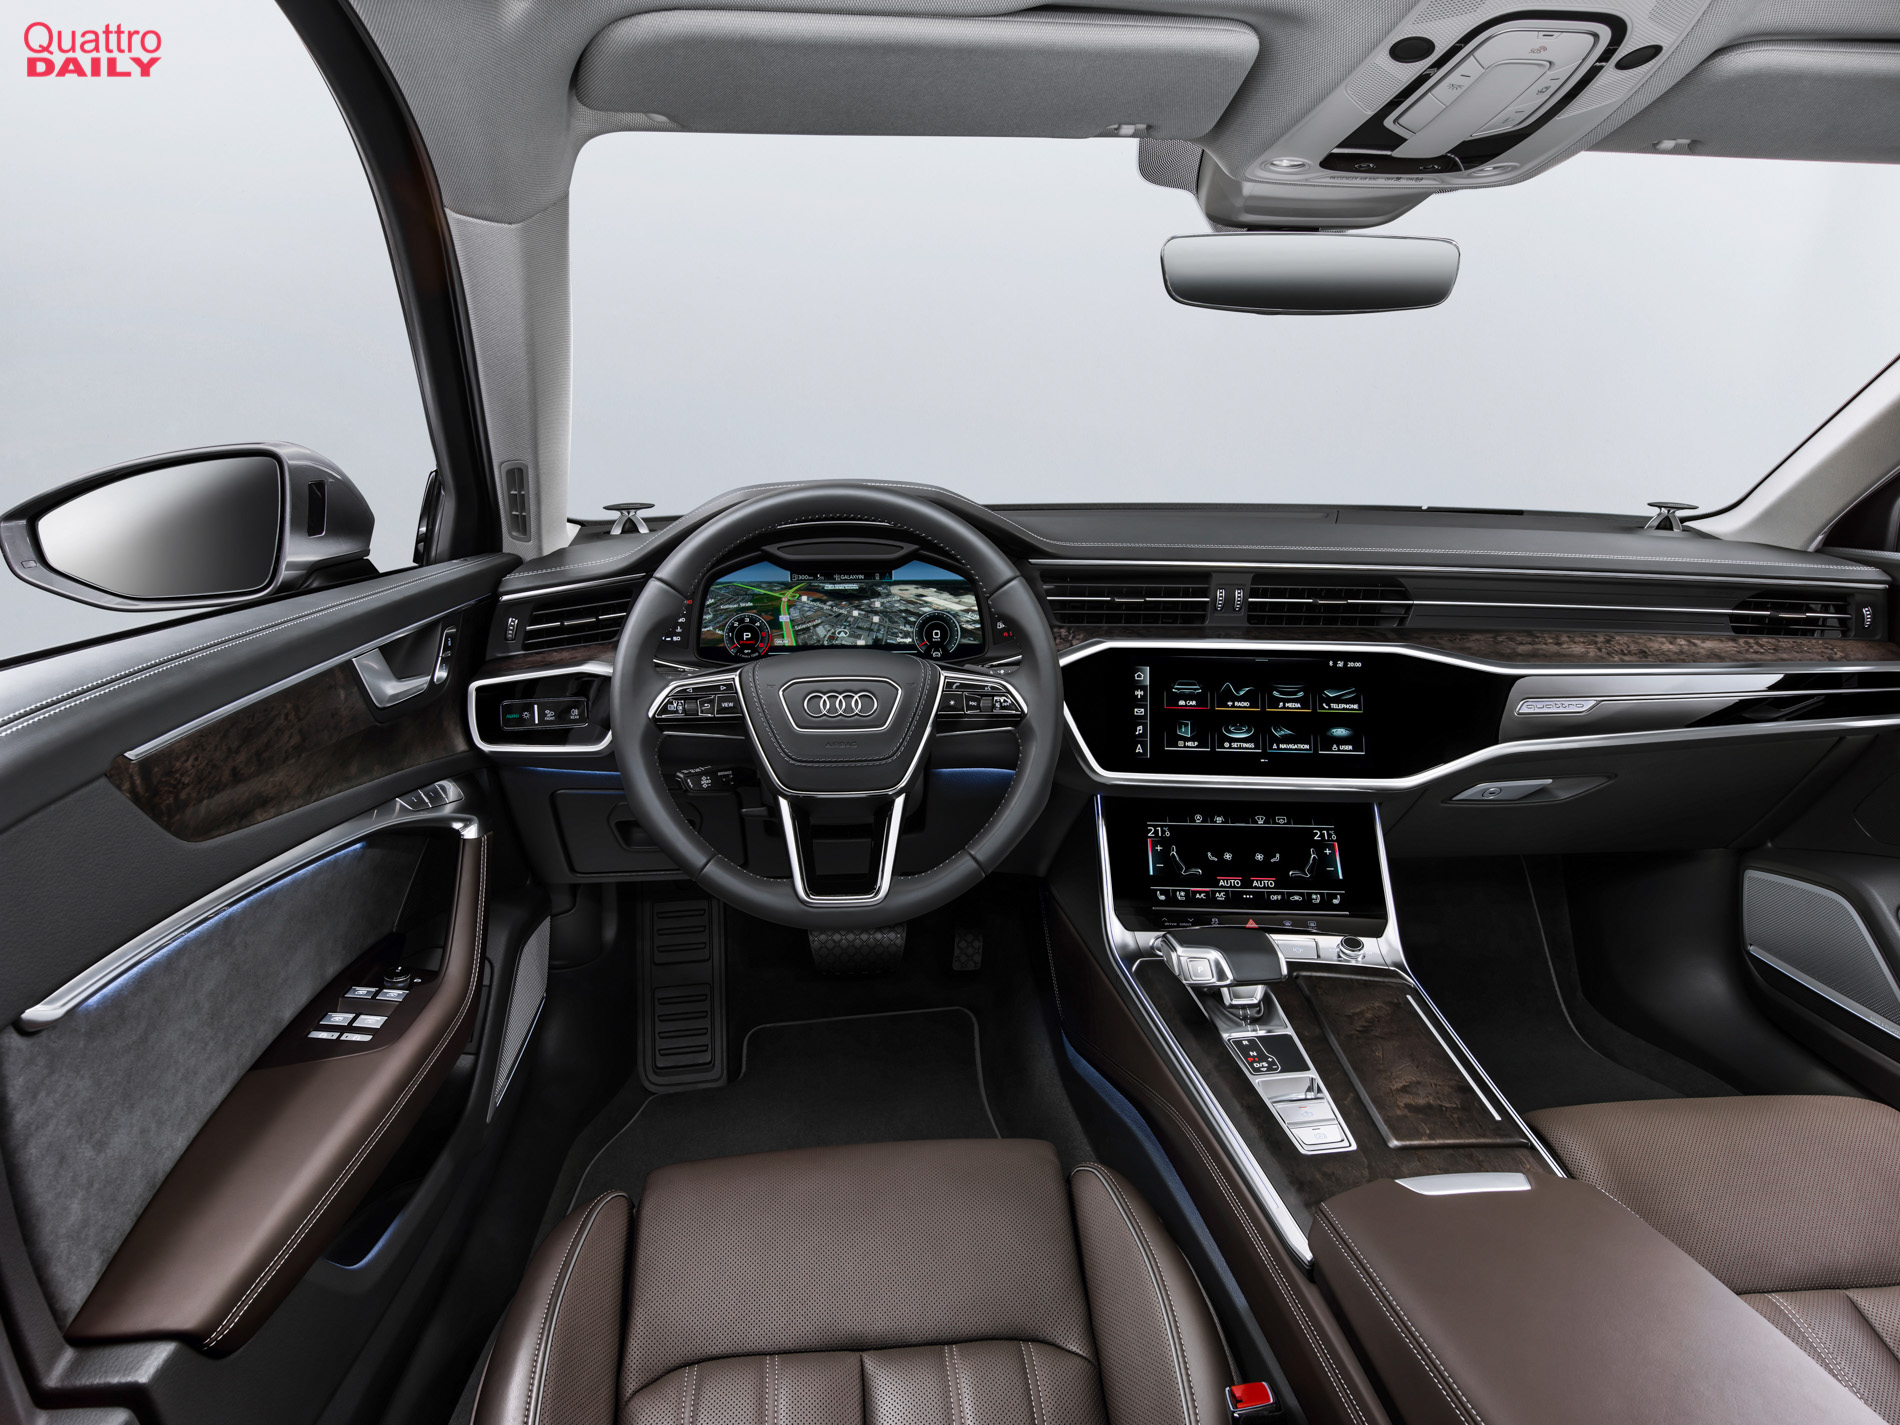 Audi A To Get New Bang Olufsen D Surround Sound - Audi a6